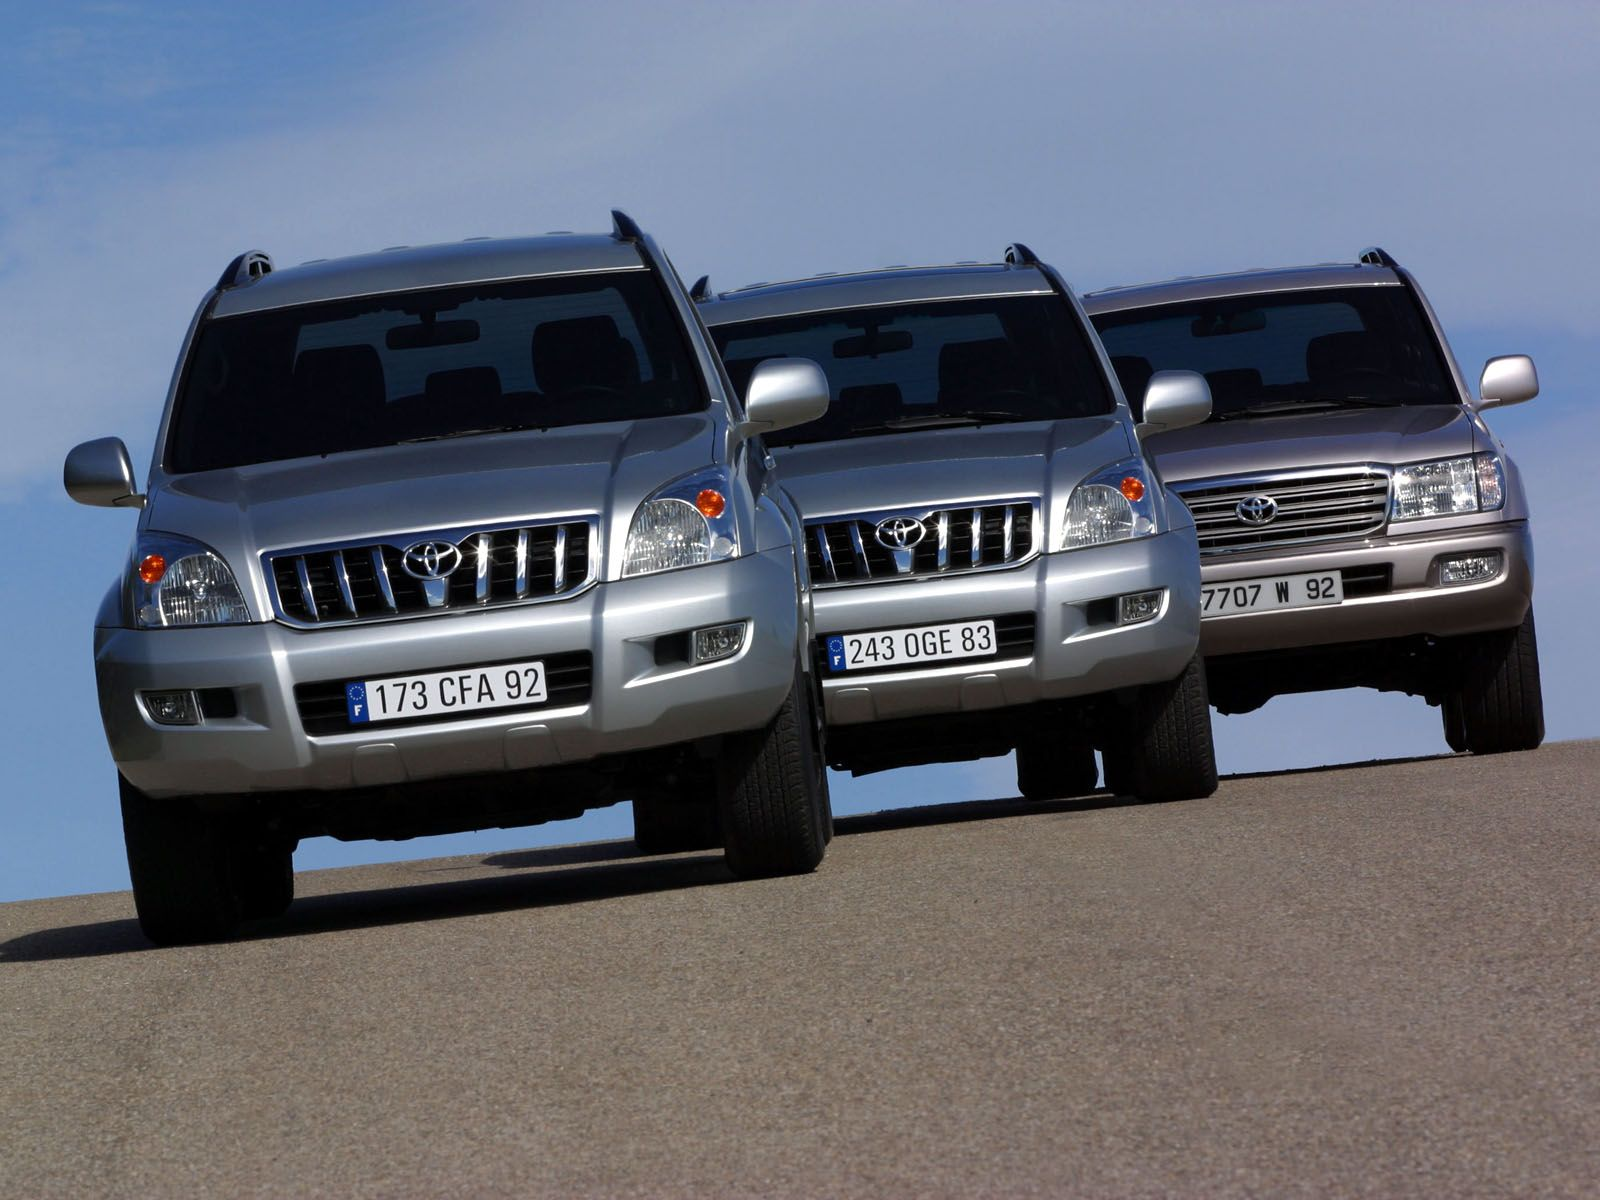 Toyota Navigation Update >> Toyota Land Cruiser Prado 120 photos - PhotoGallery with 12 pics | CarsBase.com - Cars Pictures